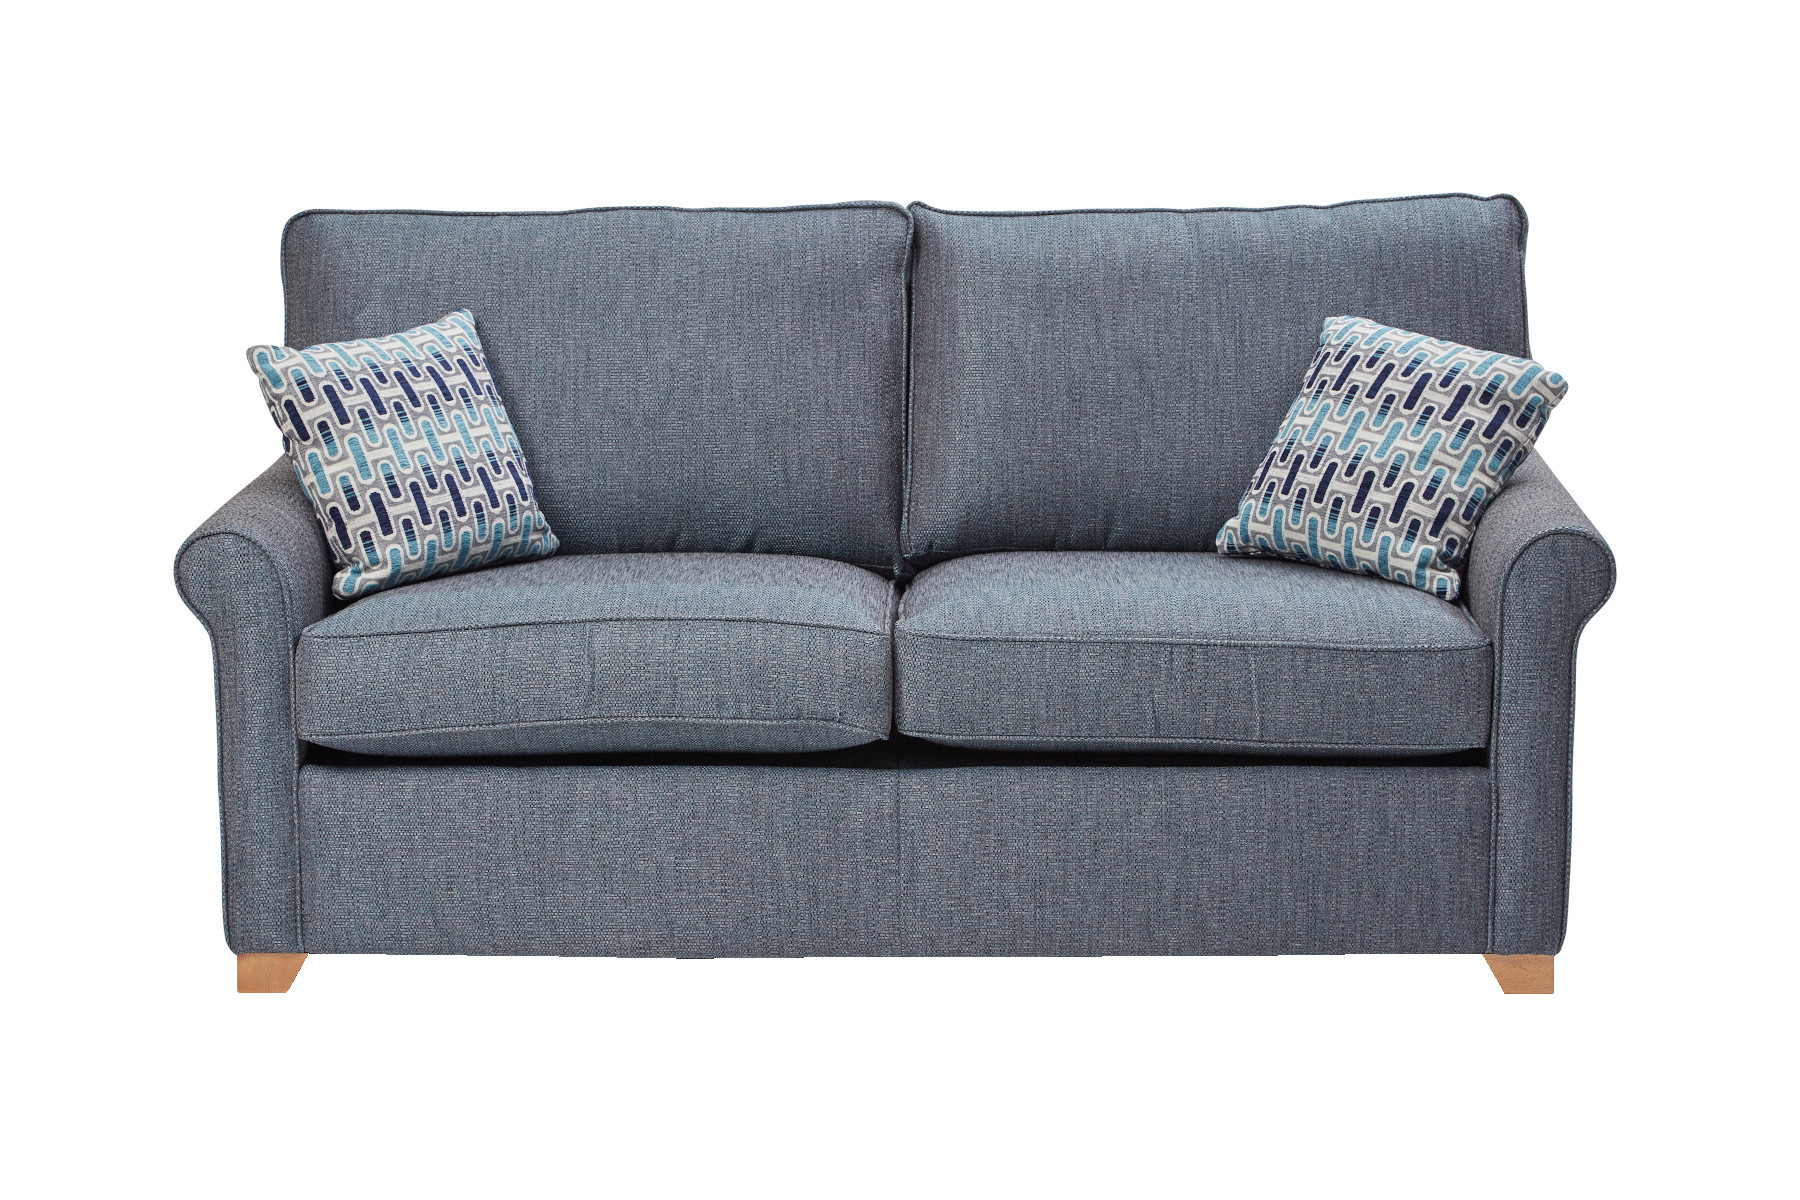 Poppy 3 Seater Sofabed